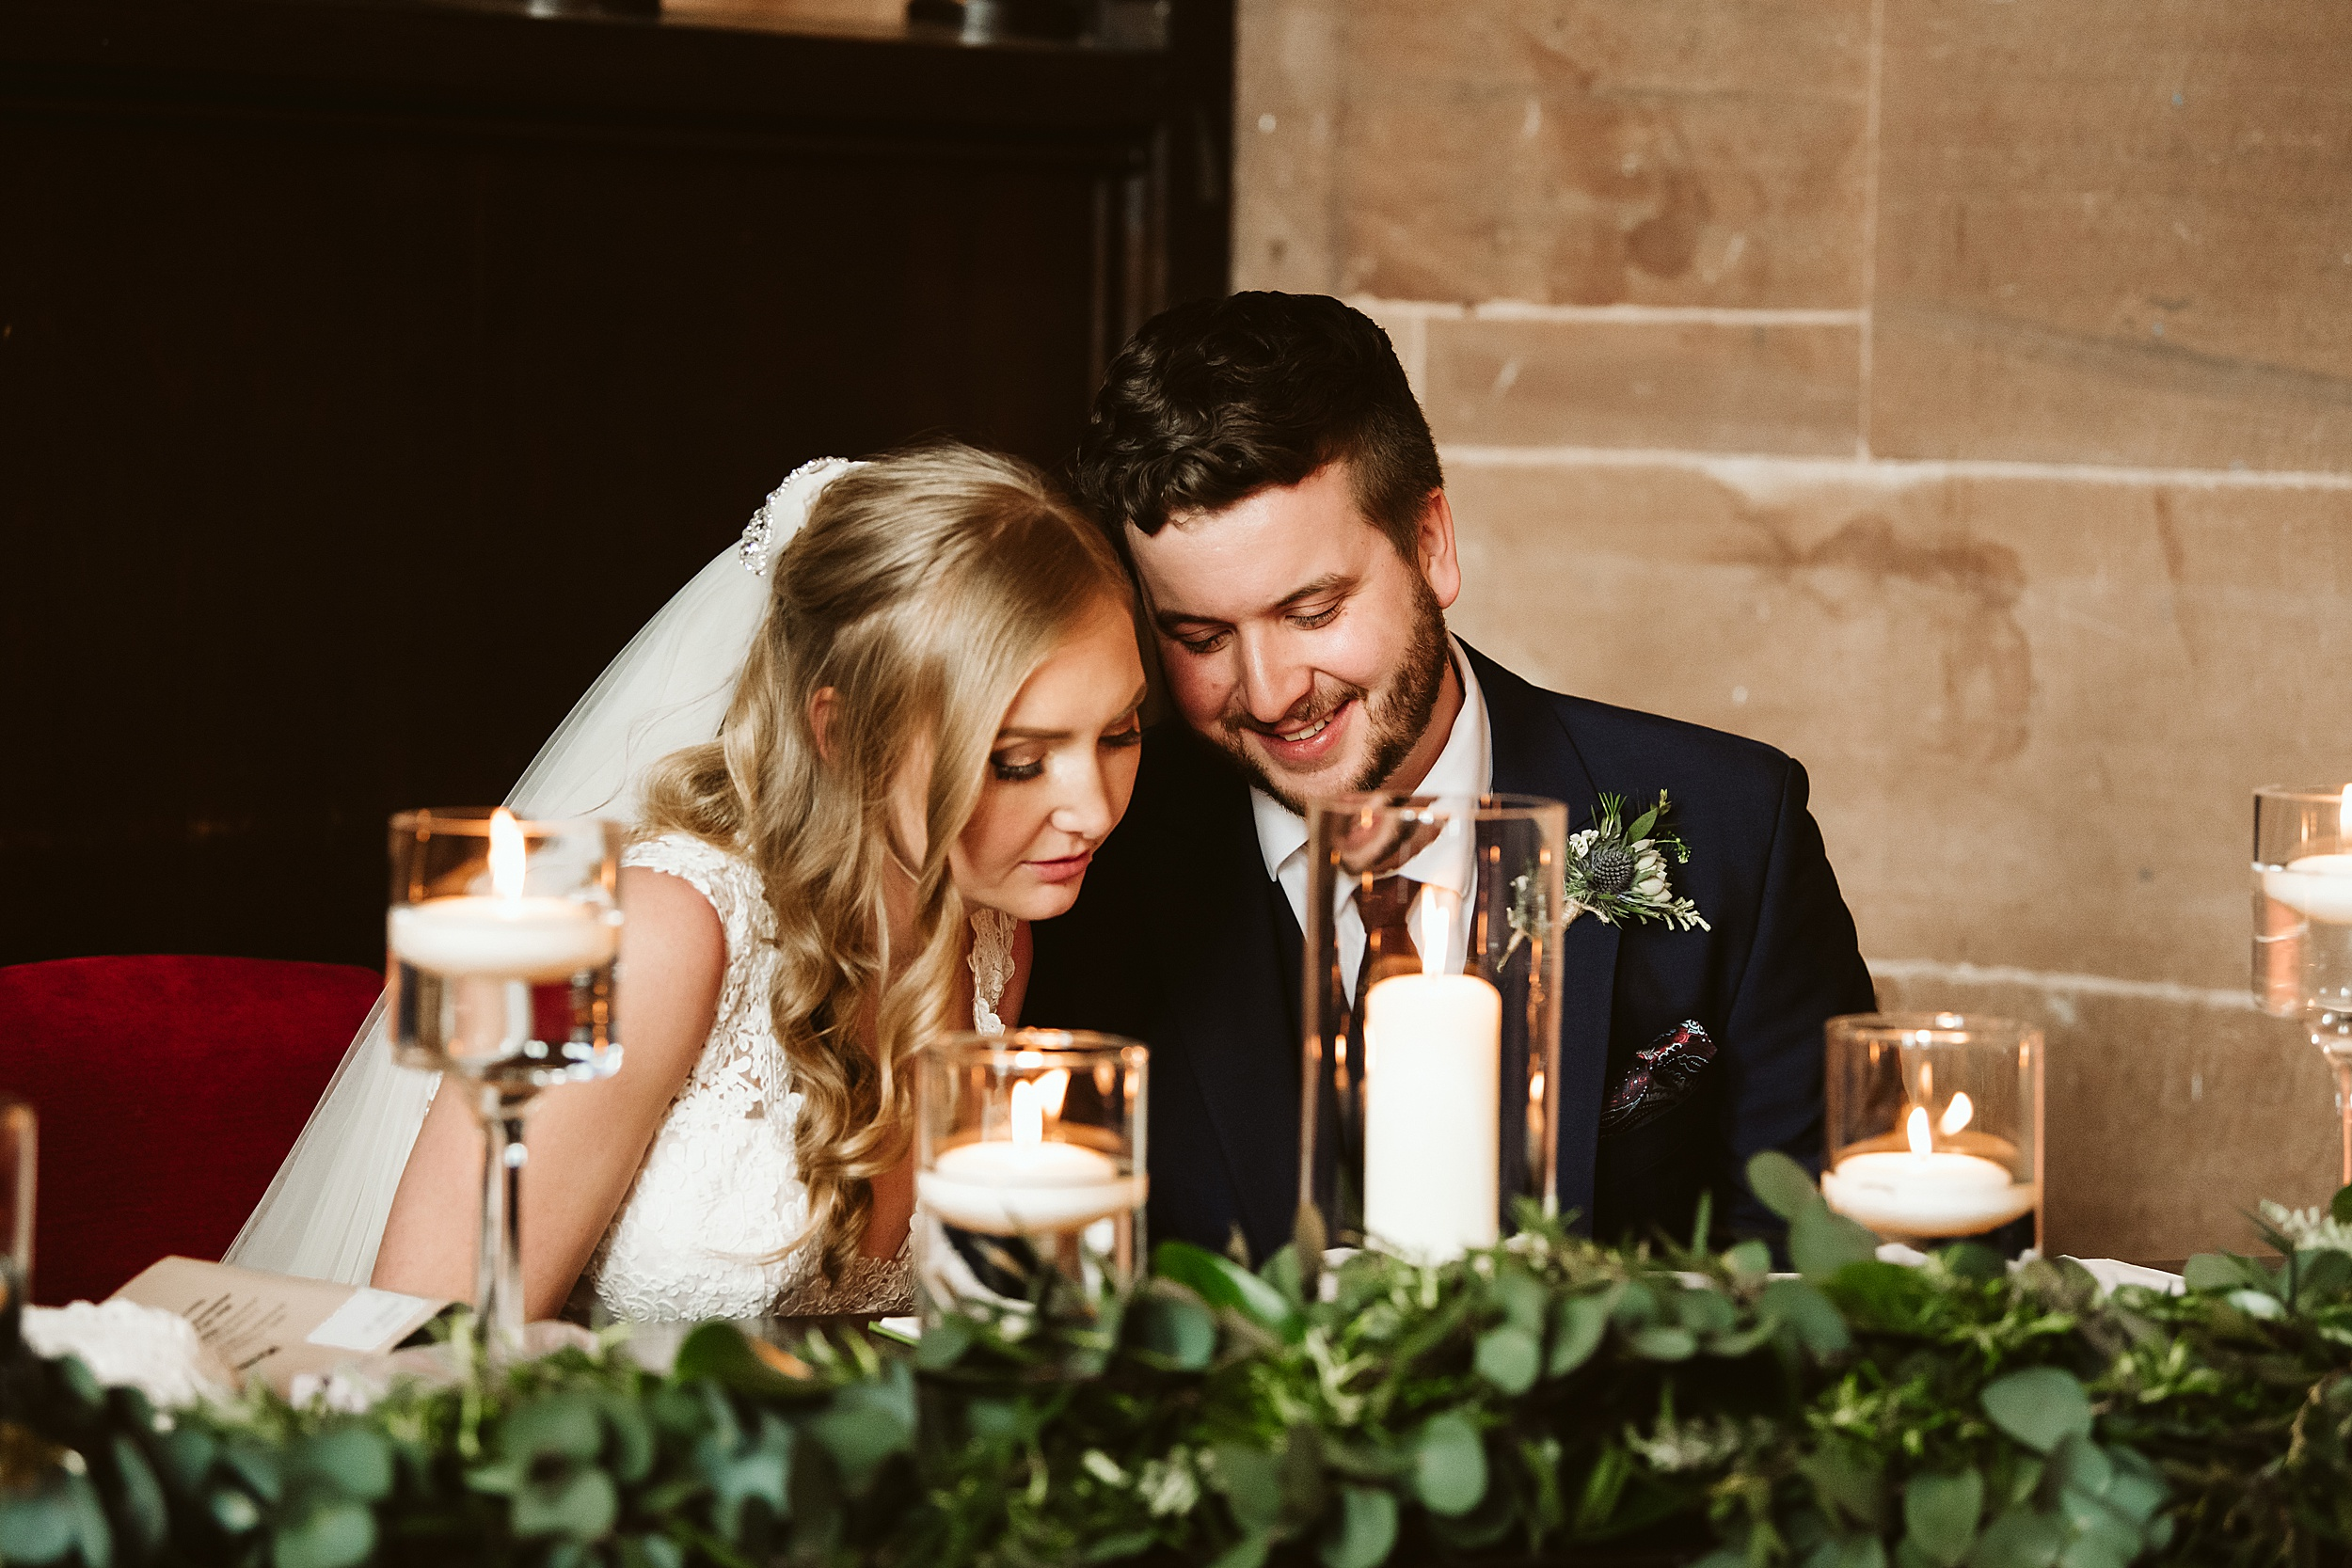 Peckforton_Castle_Cheshire_Toronto_Wedding_Photographer_UK_Destination_Wedding_0045.jpg